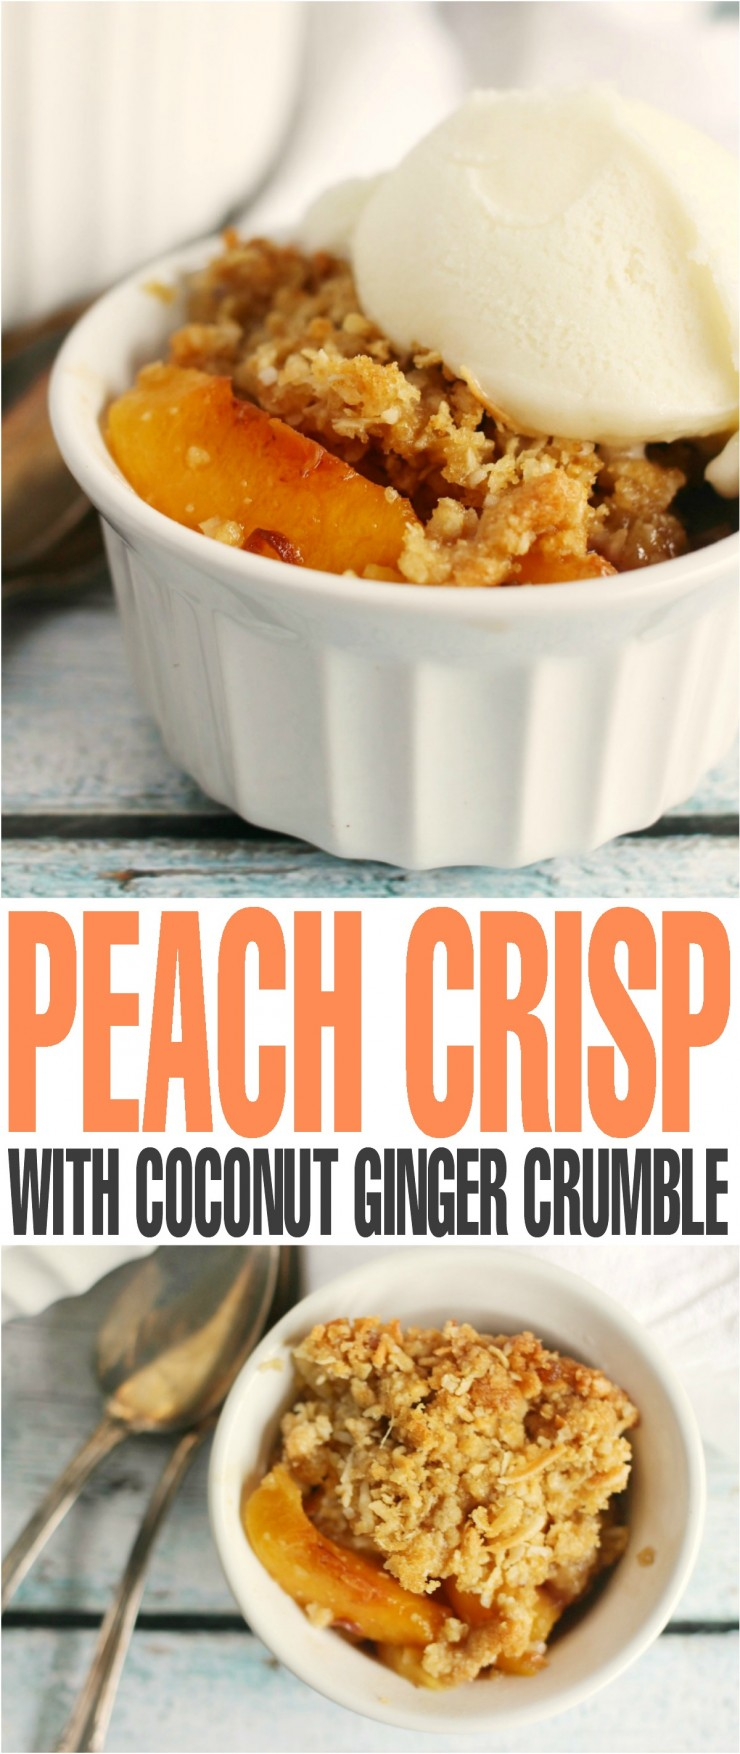 This Peach Crisp is paired with an unlikely duo of Coconut and ginger in the crumble that actually work delightfully well together.